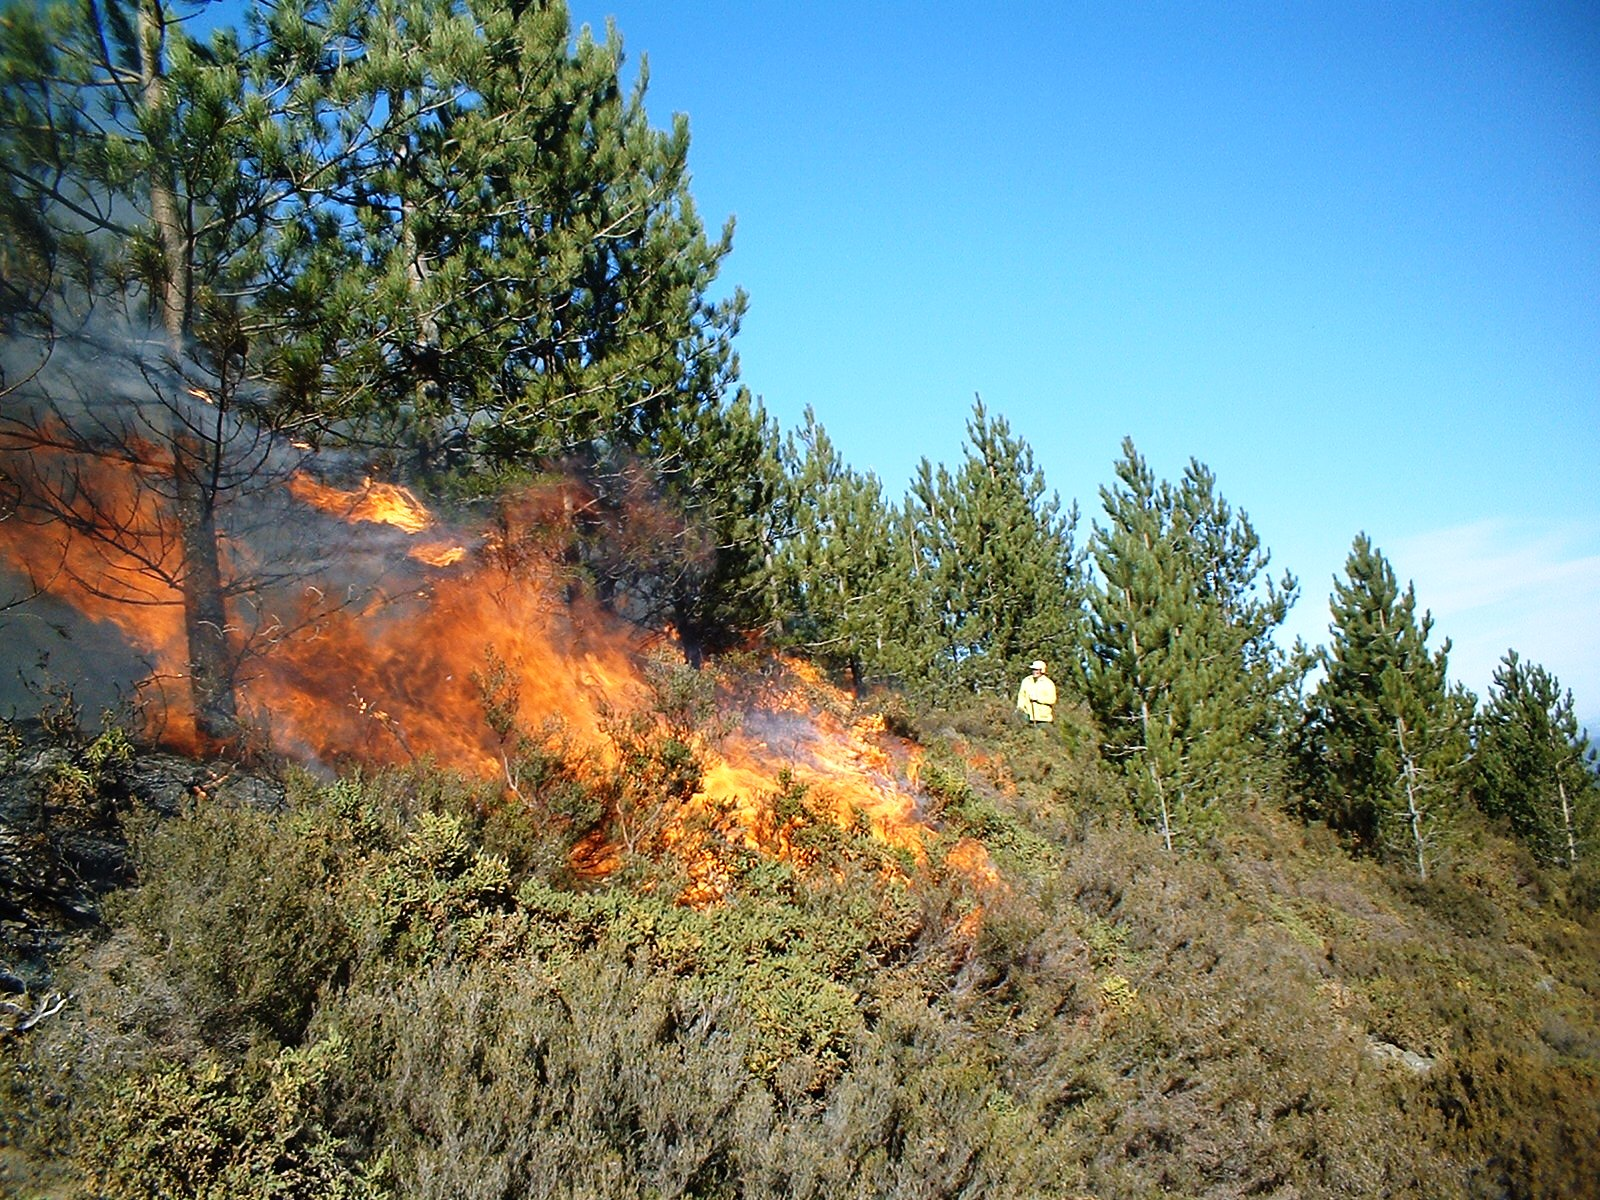 A prescribed burn in a Pinus nigra stand in Portugal